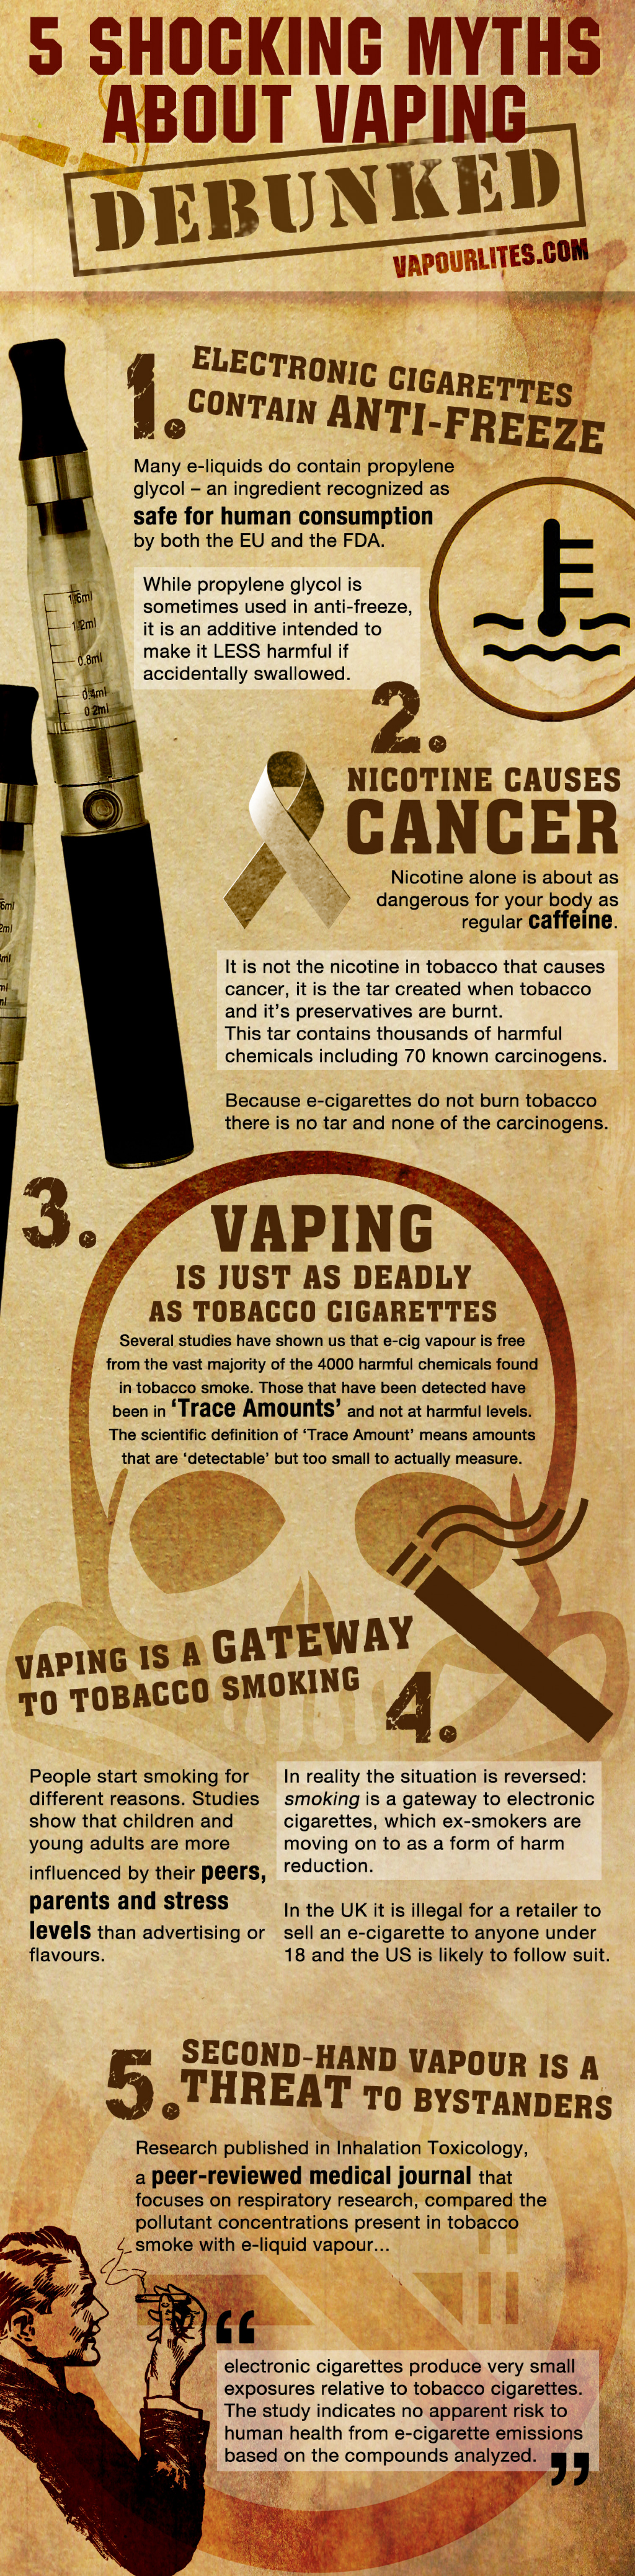 5 Shocking Myths about Vaping: Debunked Infographic